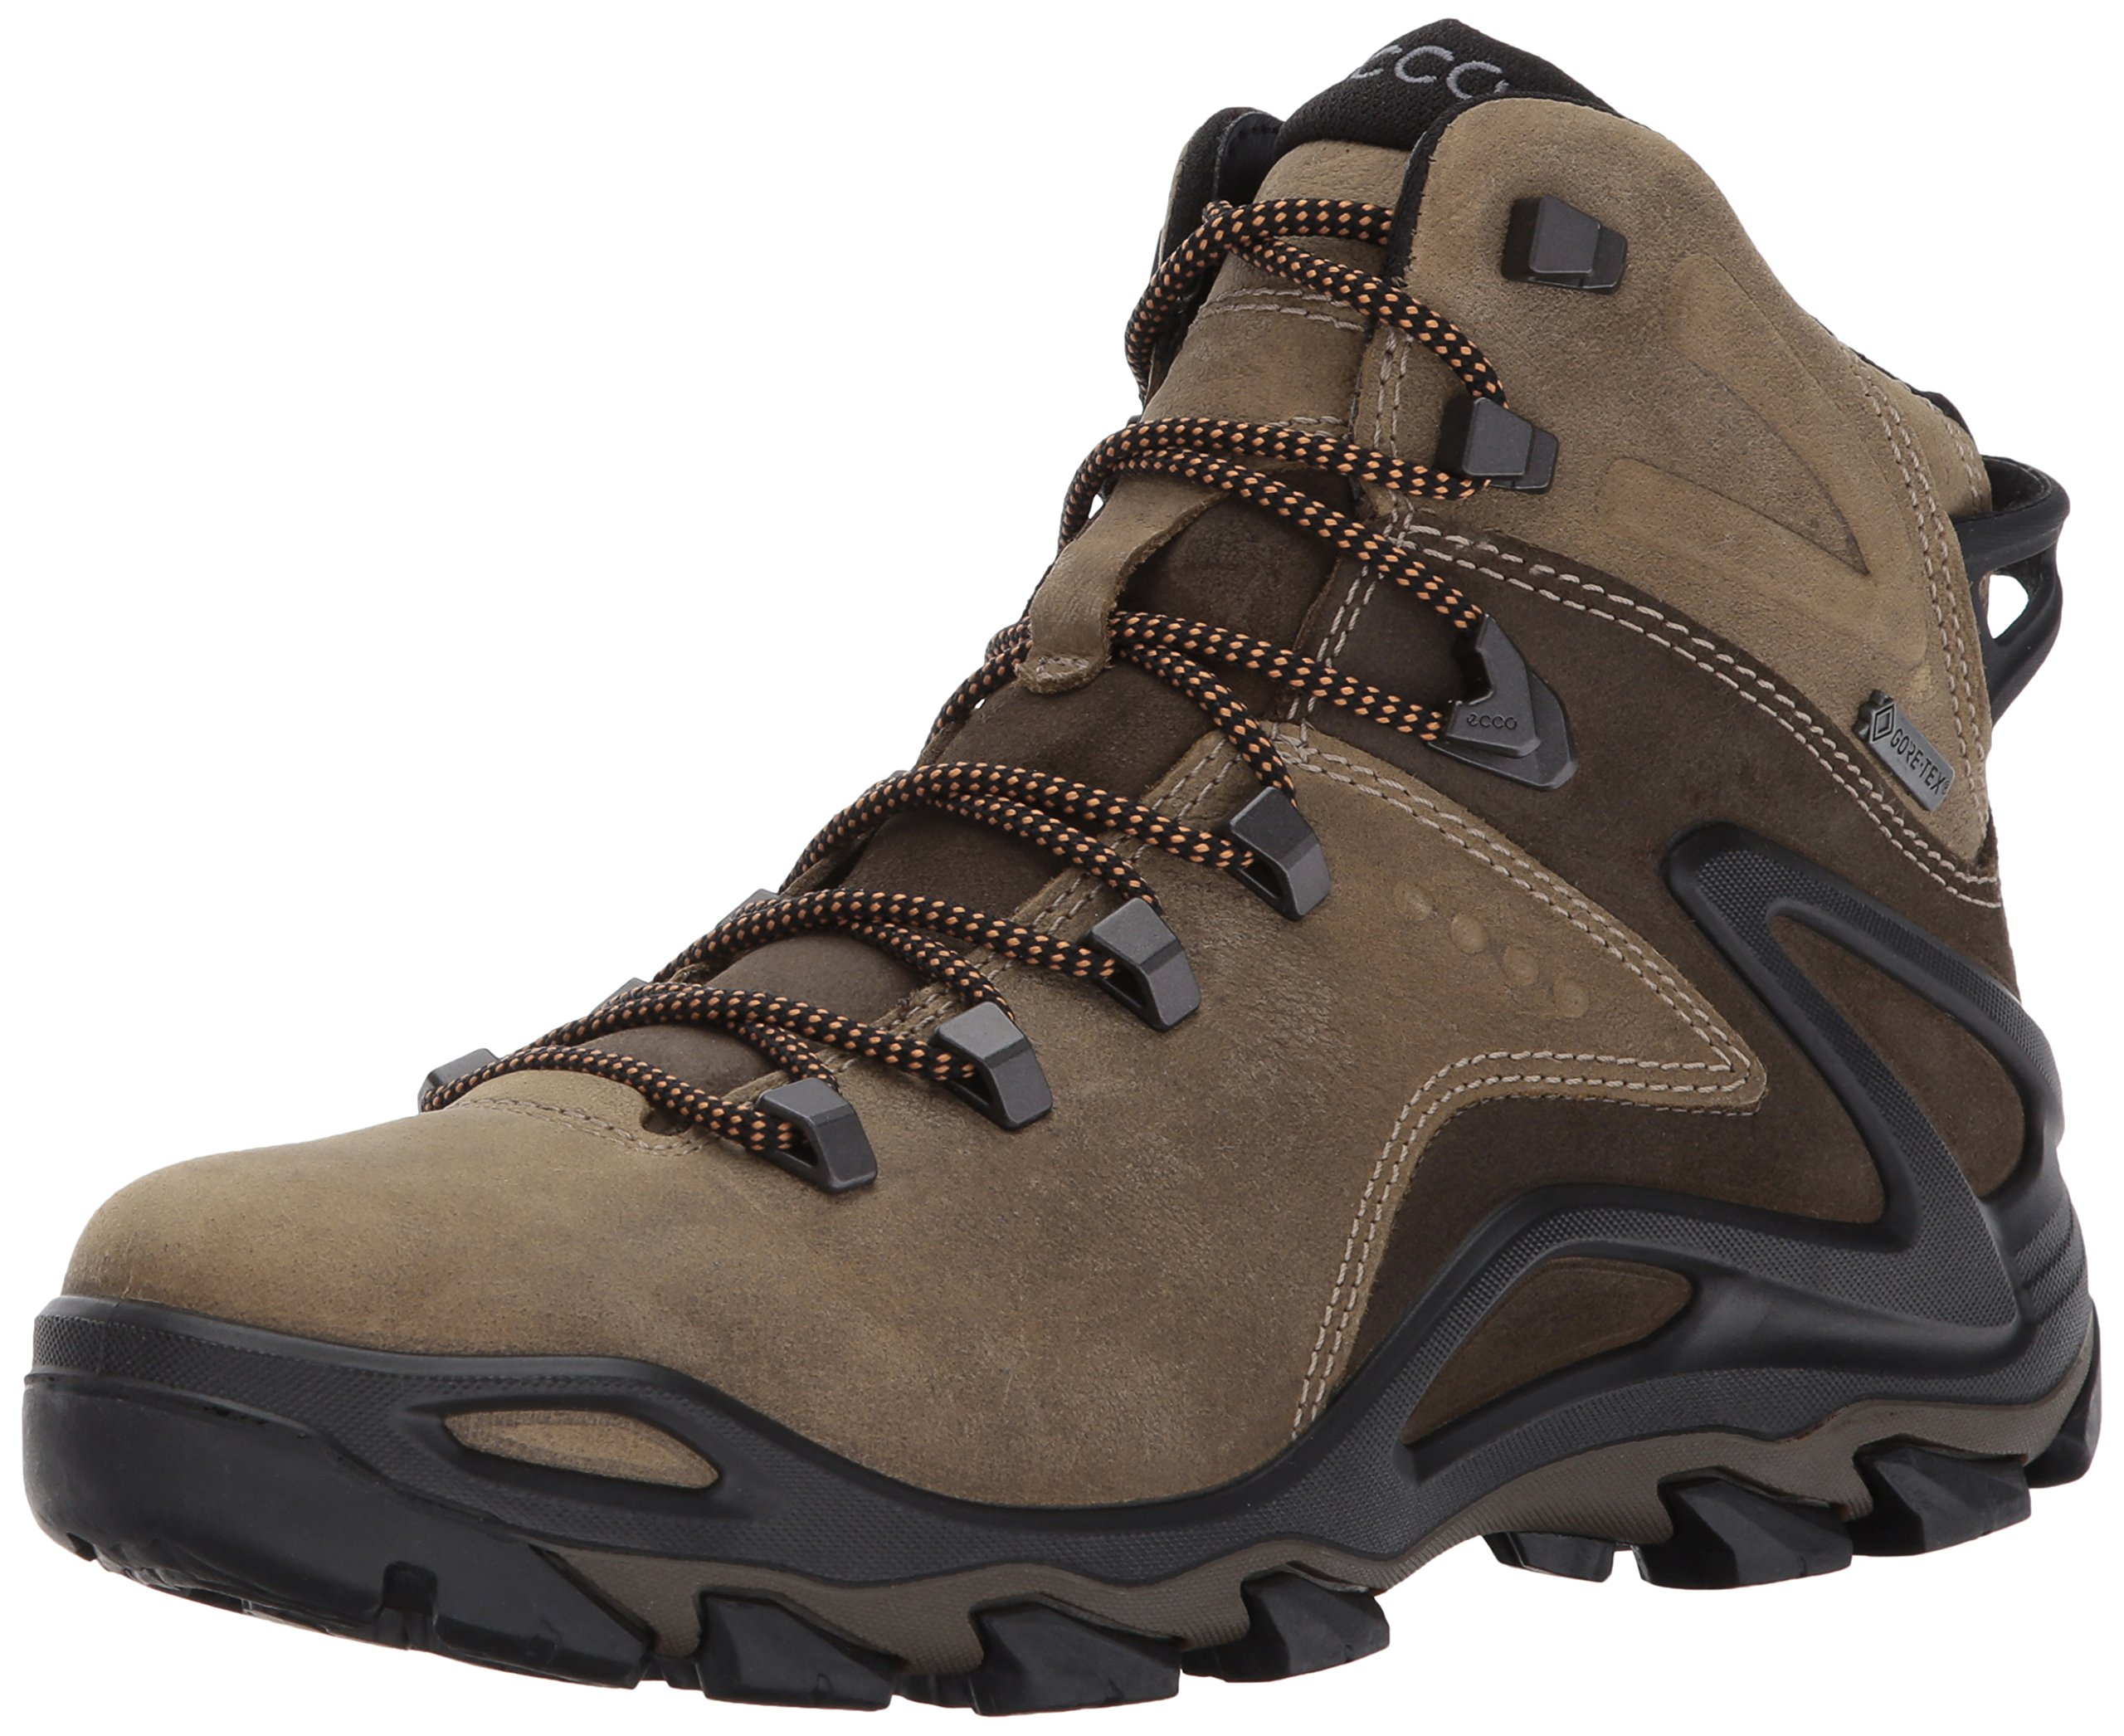 ECCO Men's Terra Evo High Gore-Tex Backpacking Boot,Navajo Brown/Birch,41 EU/7-7.5 US